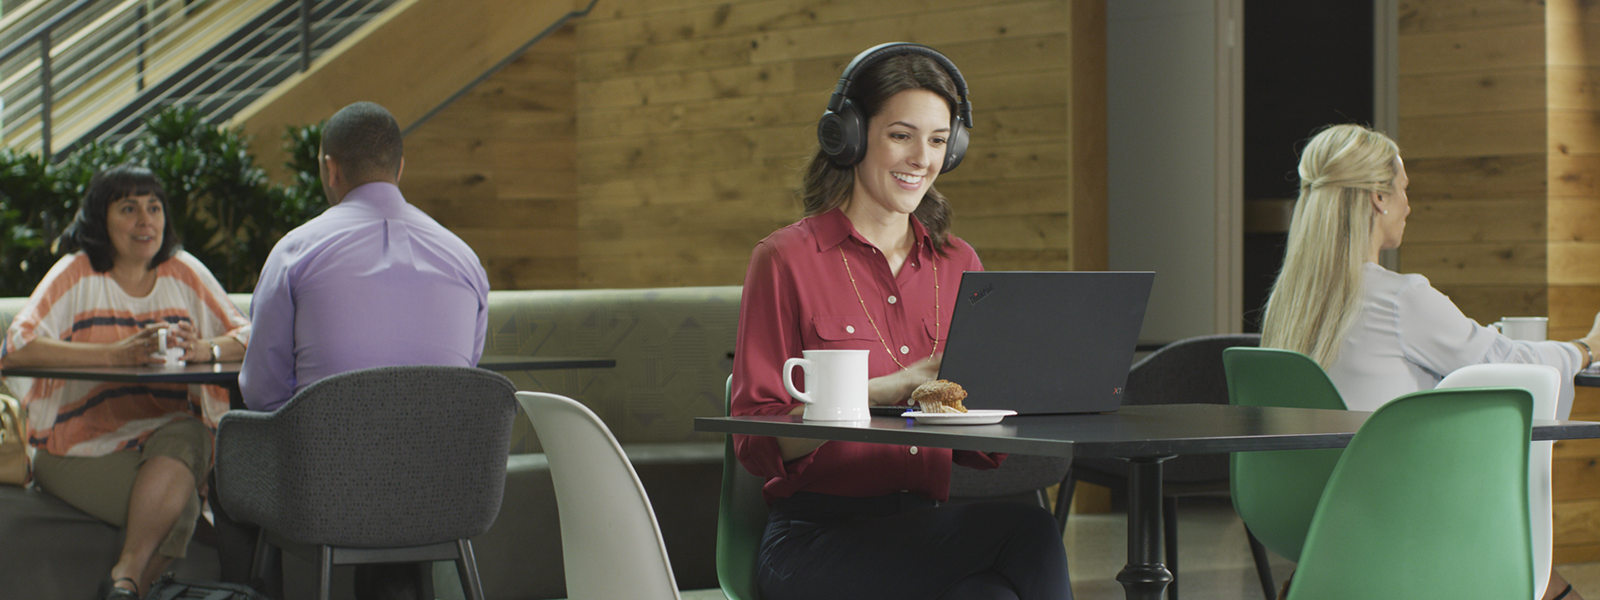 Photo of a woman at a coffee shop using a headset to have a conference call.